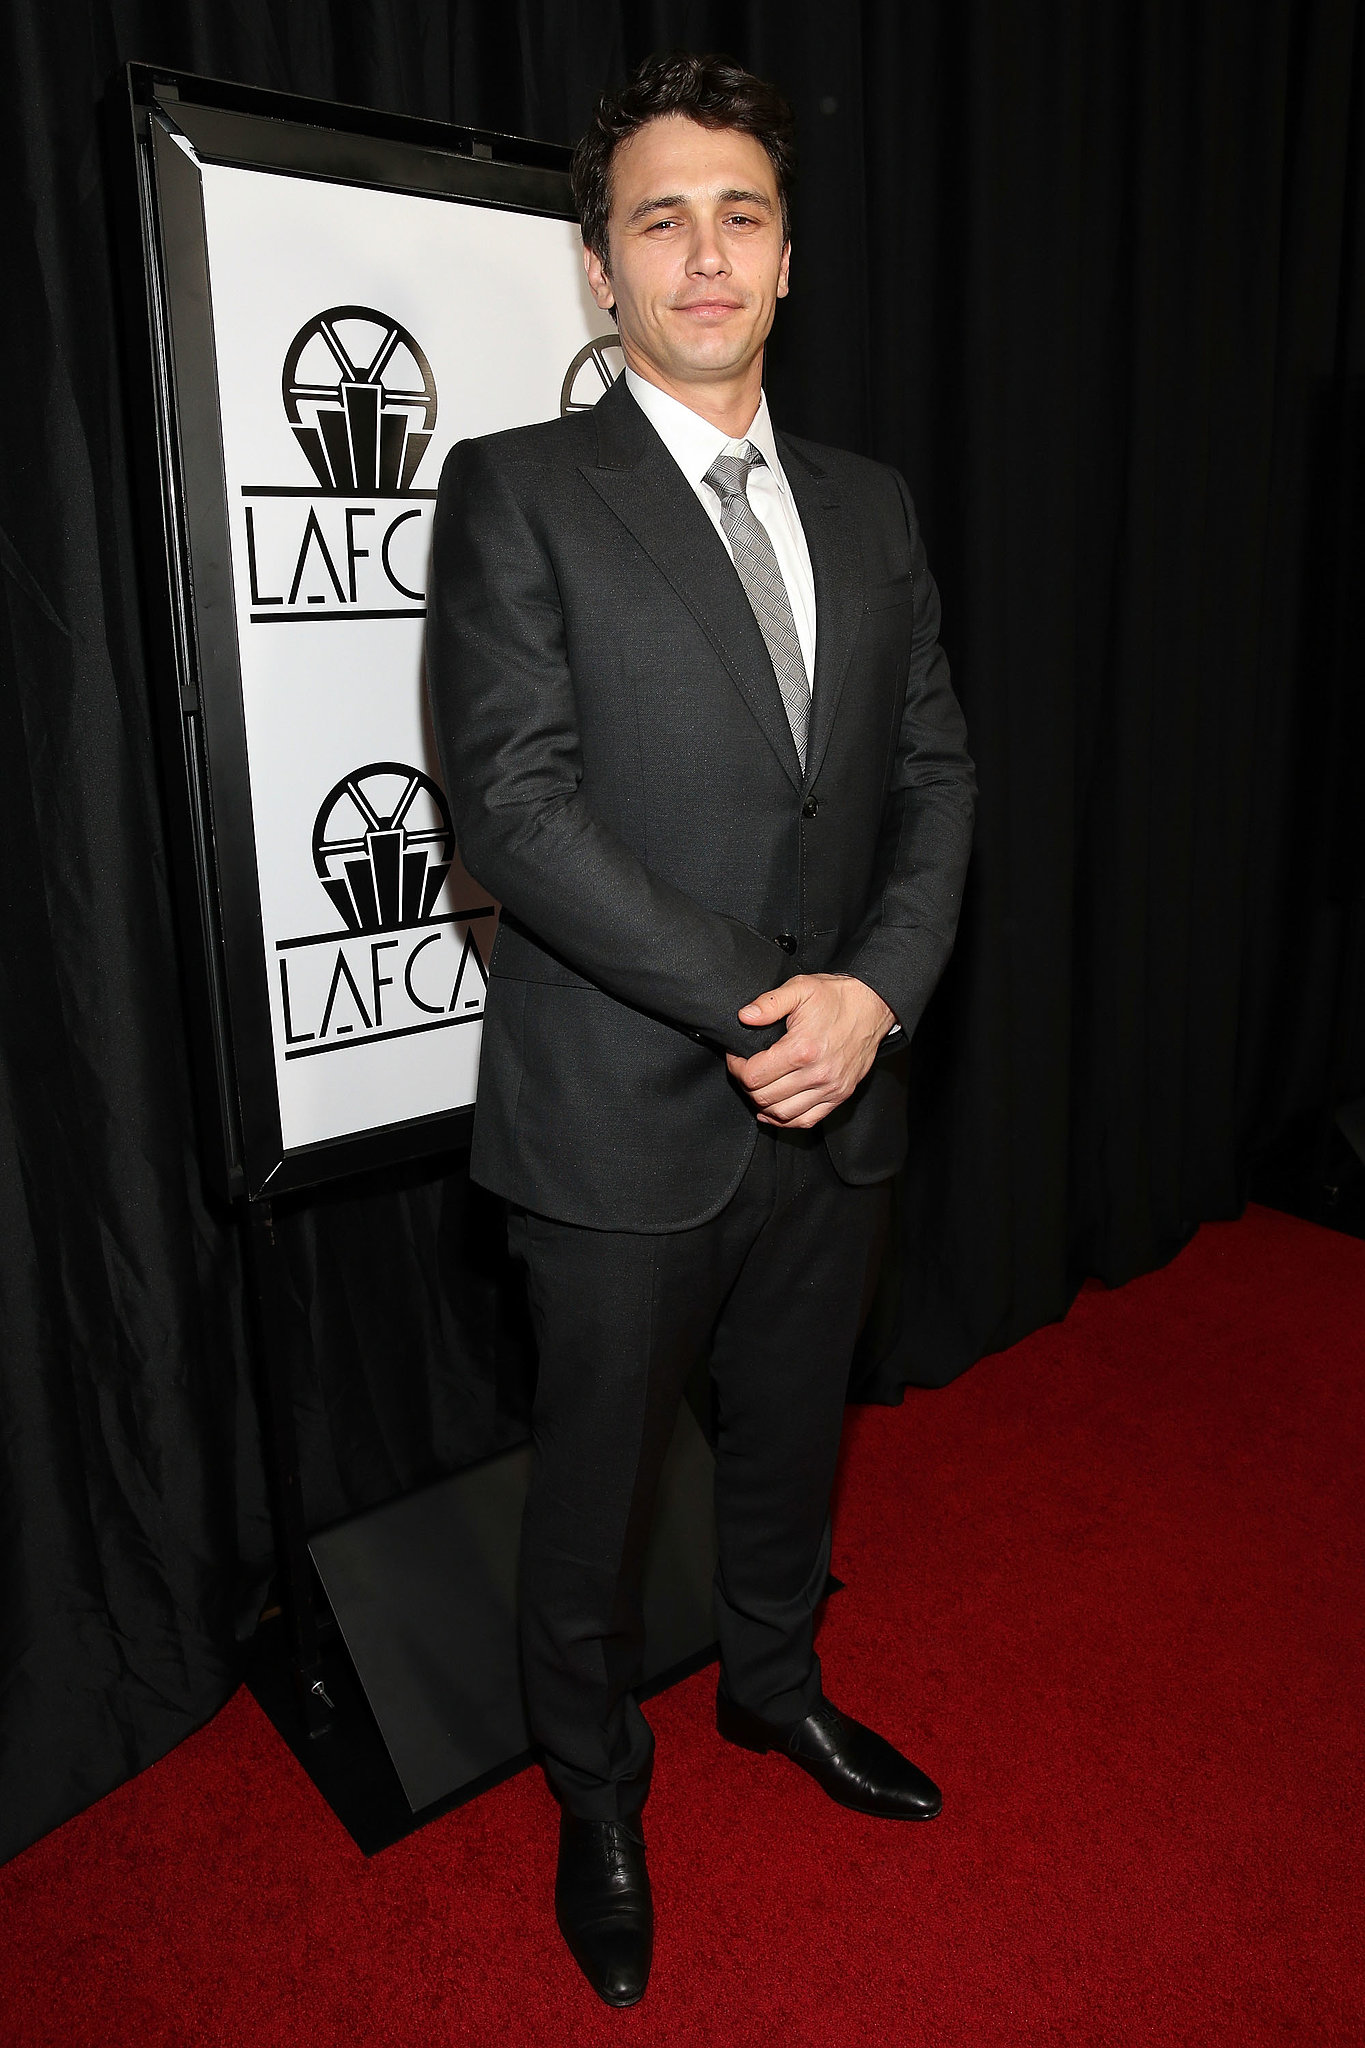 On Saturday, James Franco attended the LA Film Critics Association Awards.